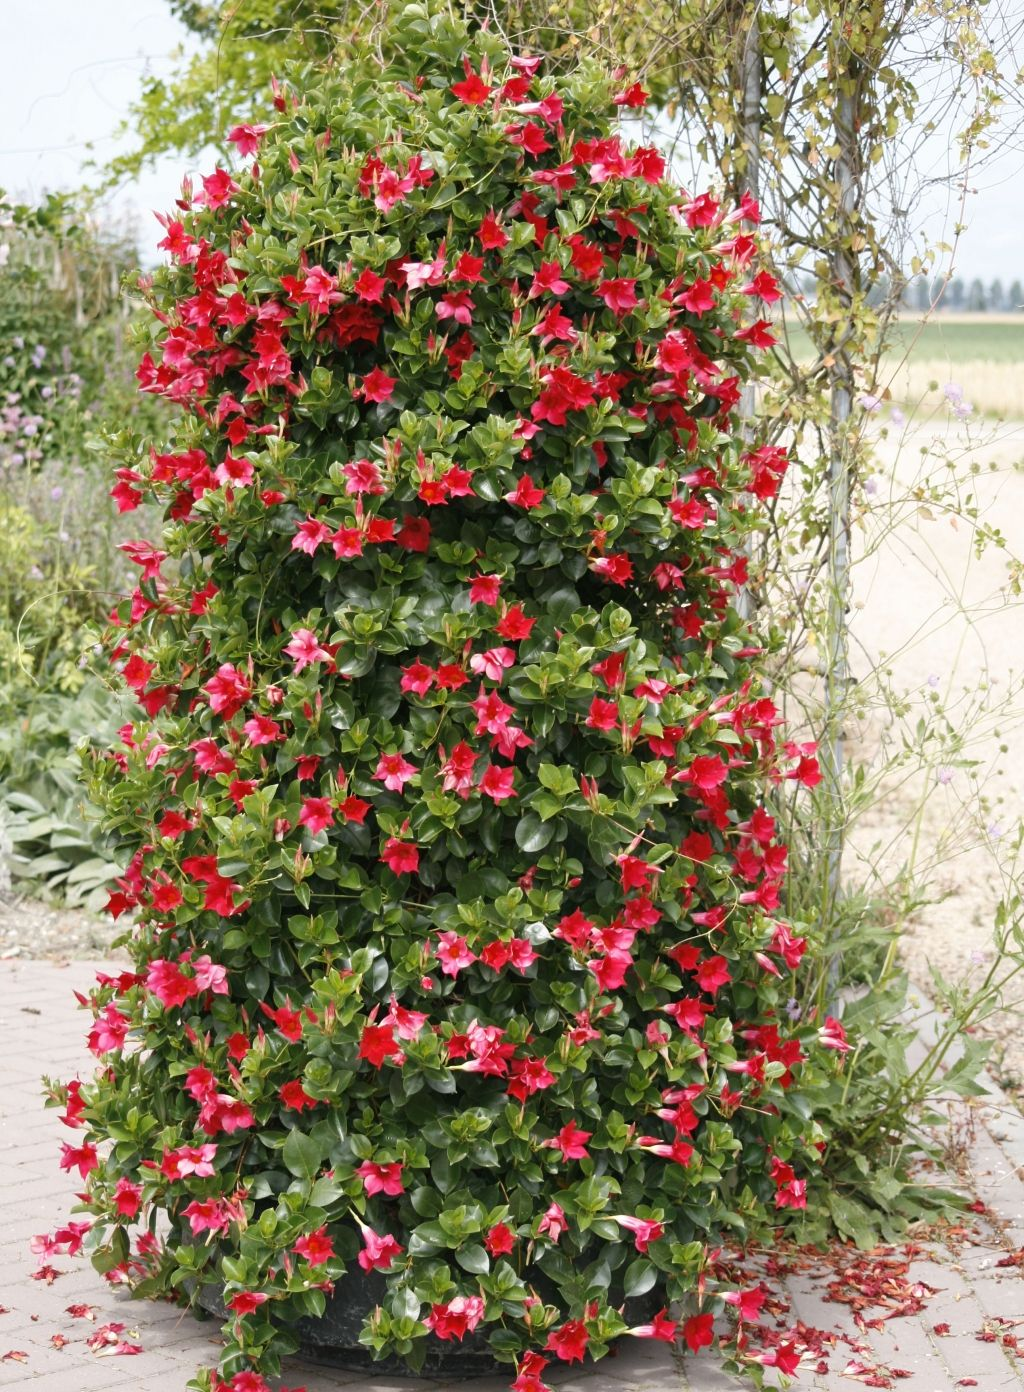 Mandeville flowers outside boxes containers more - How to plant a flower garden for dummies ...